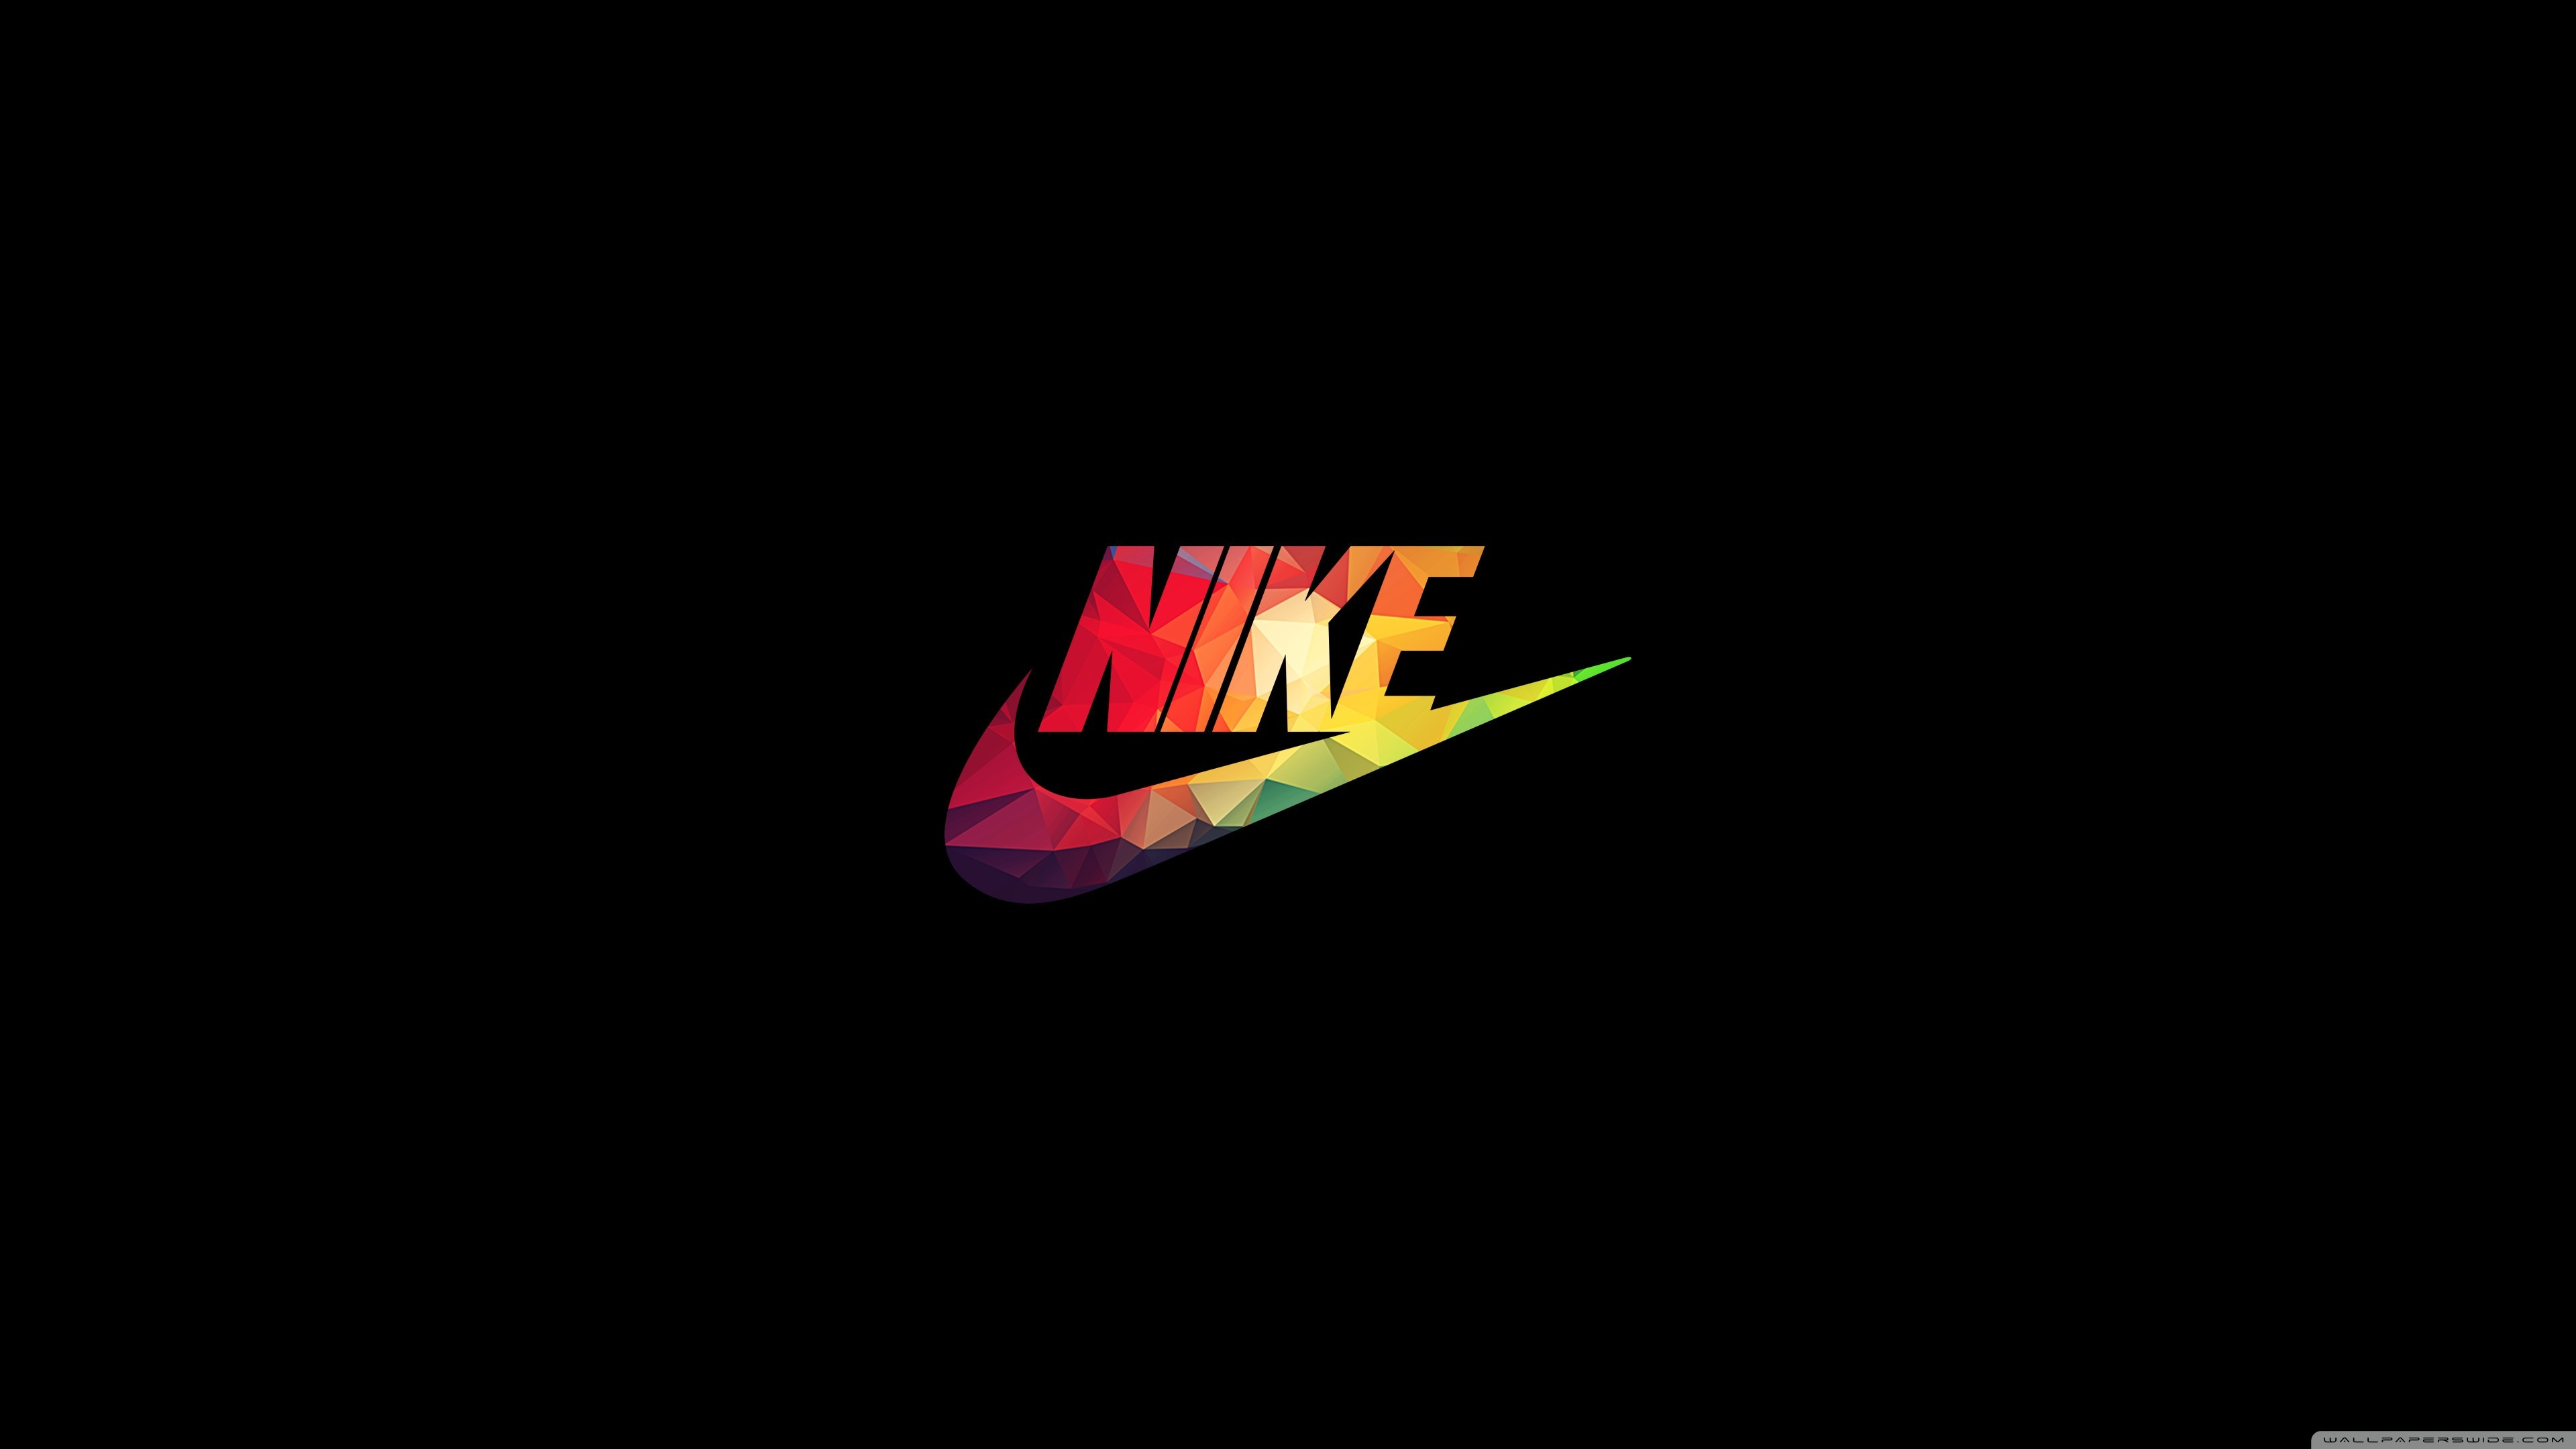 Nike Football Wallpaper Hd 68 Images